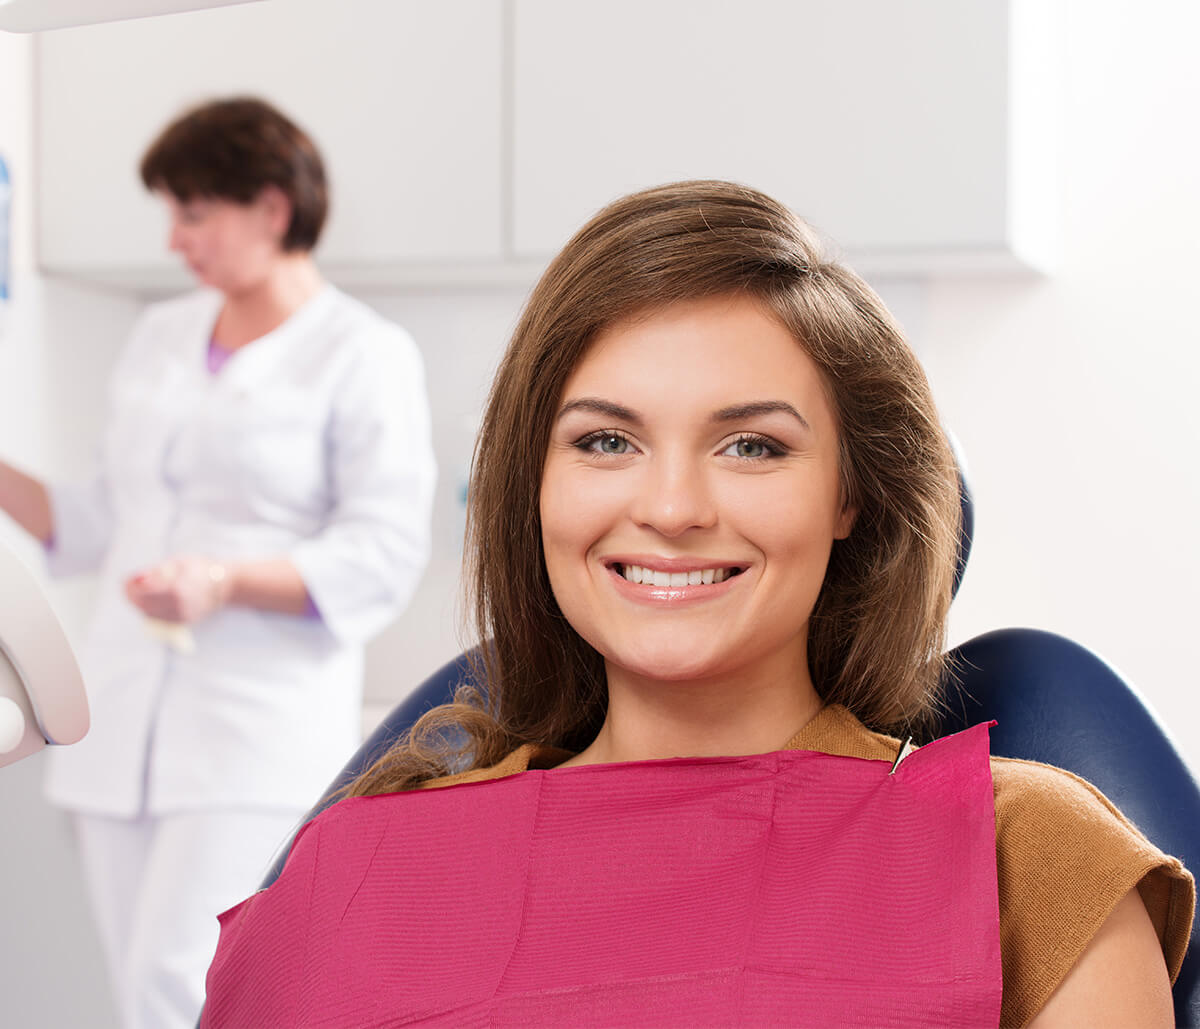 Dentist in London Ontario Area Describes the Benefits of a Professional Teeth Whitening Treatment